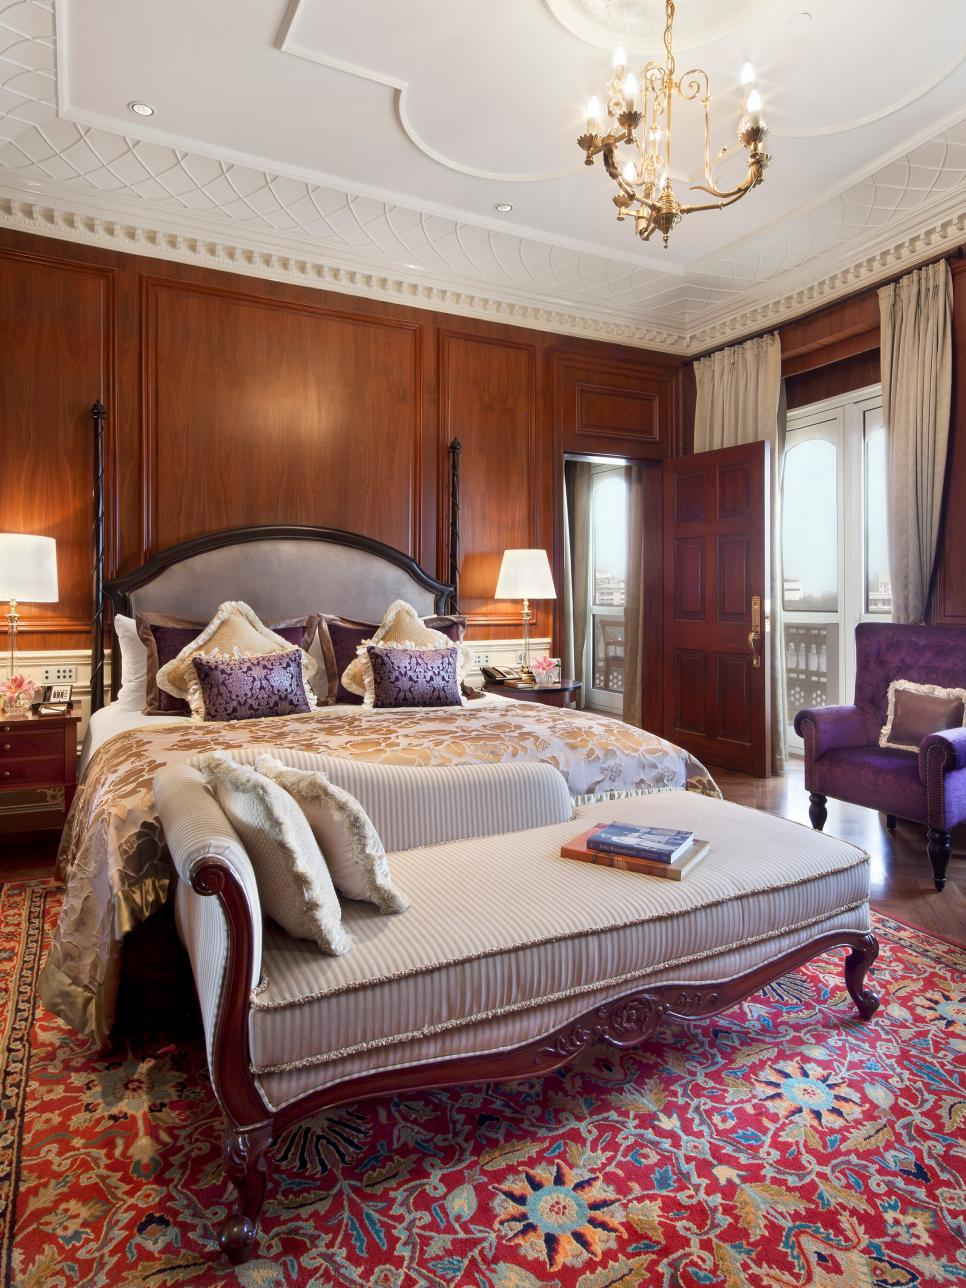 World Bedroom Furniture: World's Most Luxurious Bedrooms